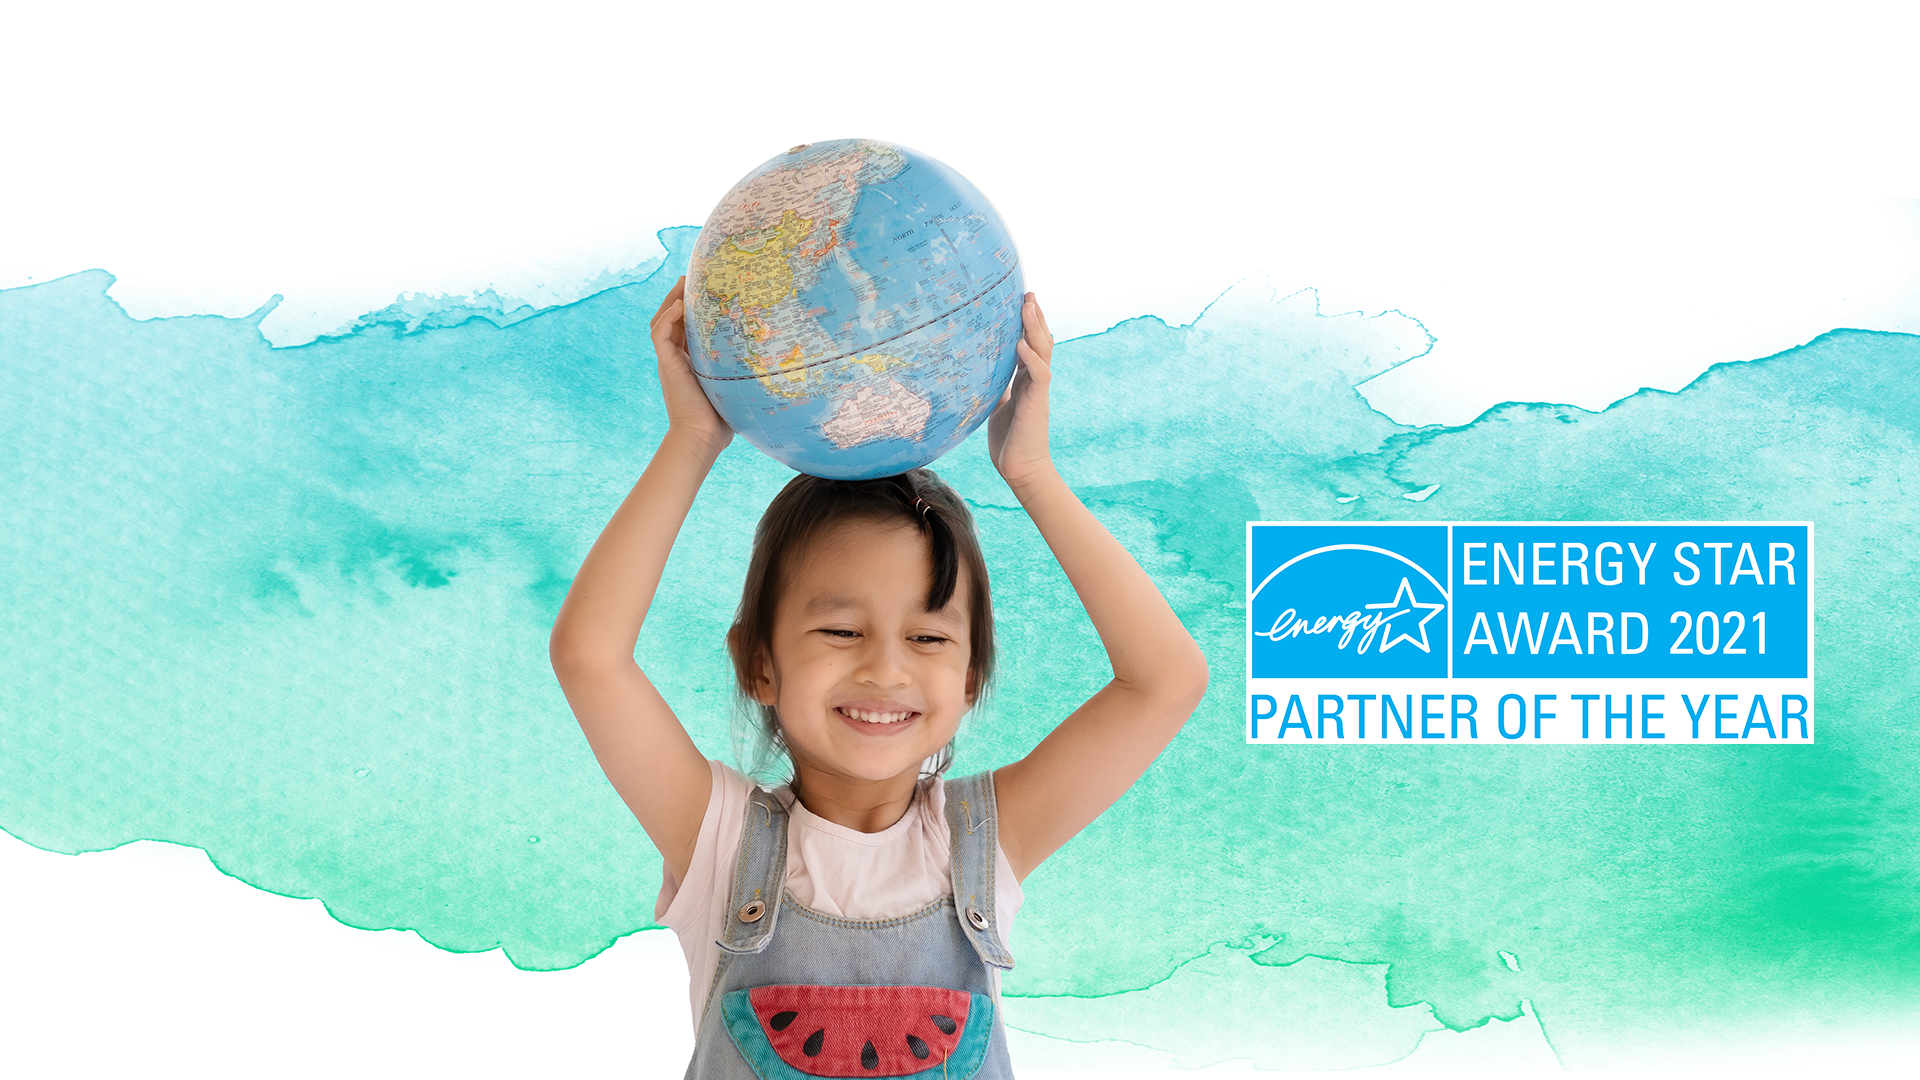 Earth day image with girl holding globe